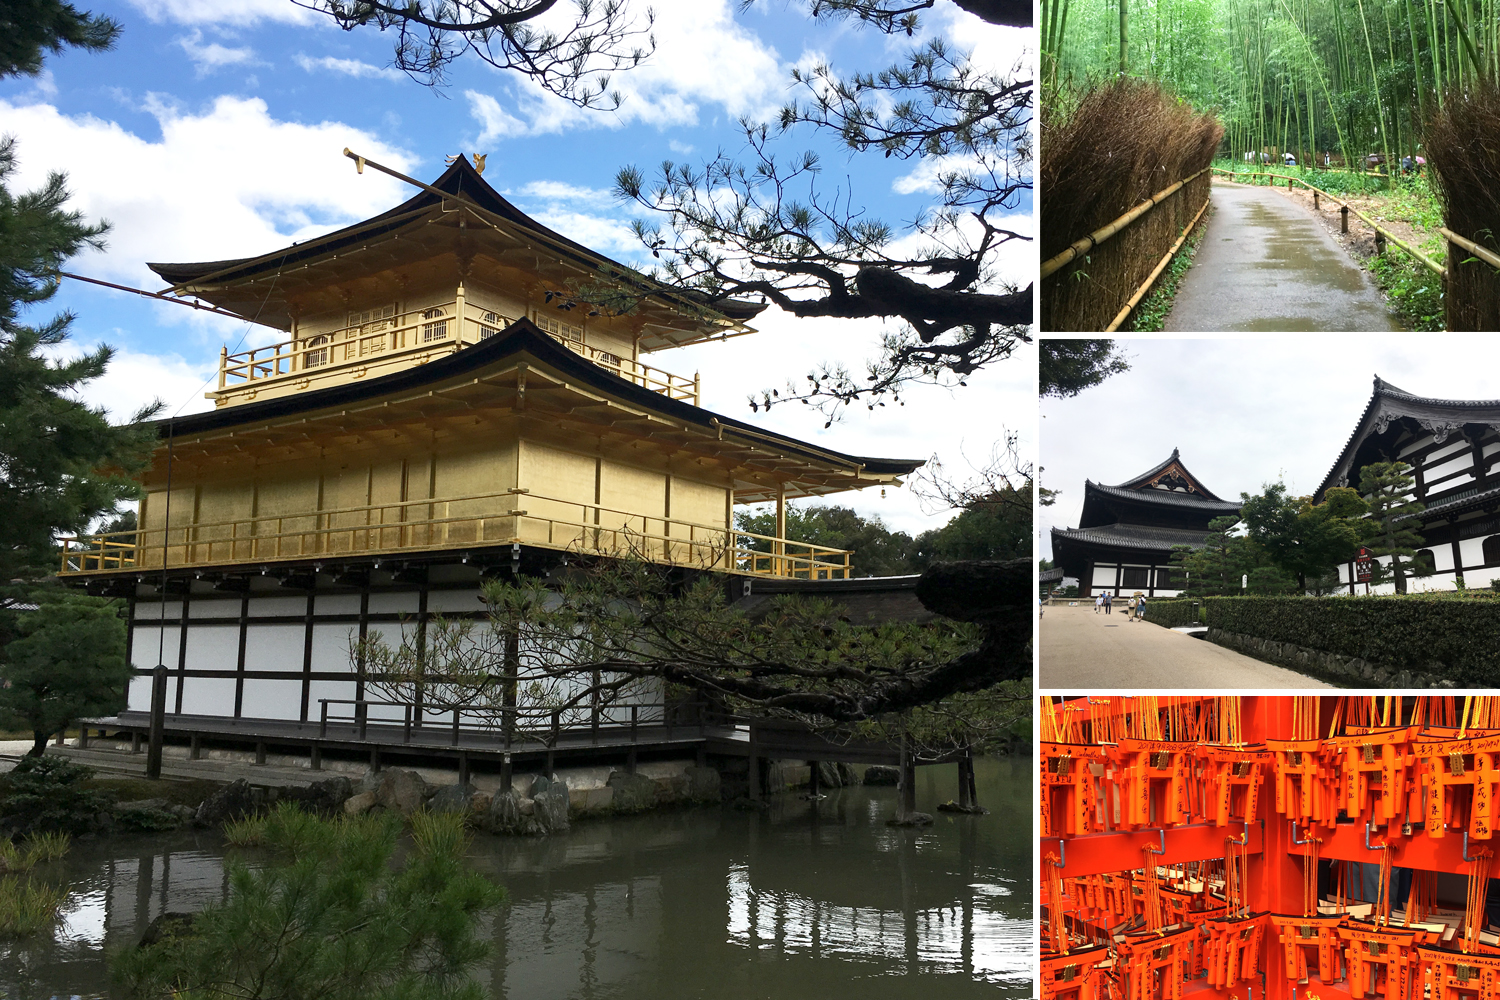 More than just a beautiful place, Kyoto is fast attracting creatives, social entrepreneurs and start-ups.